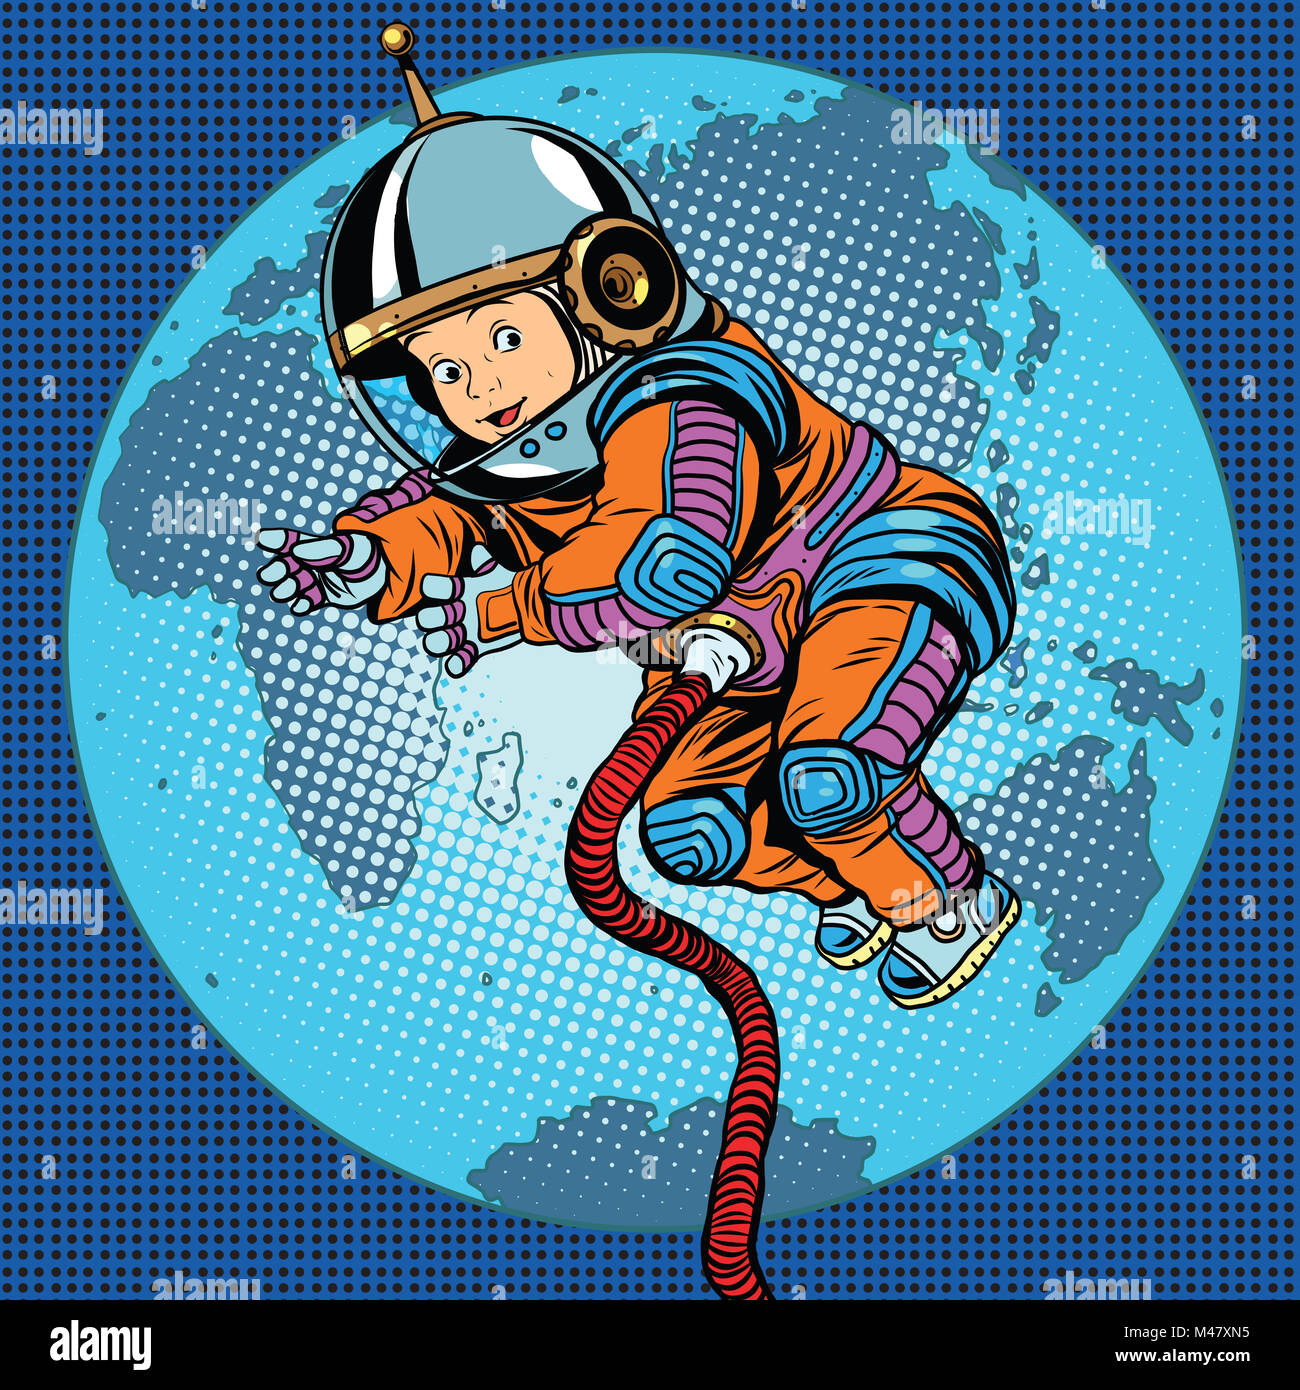 Astronaut baby Earth space - Stock Image